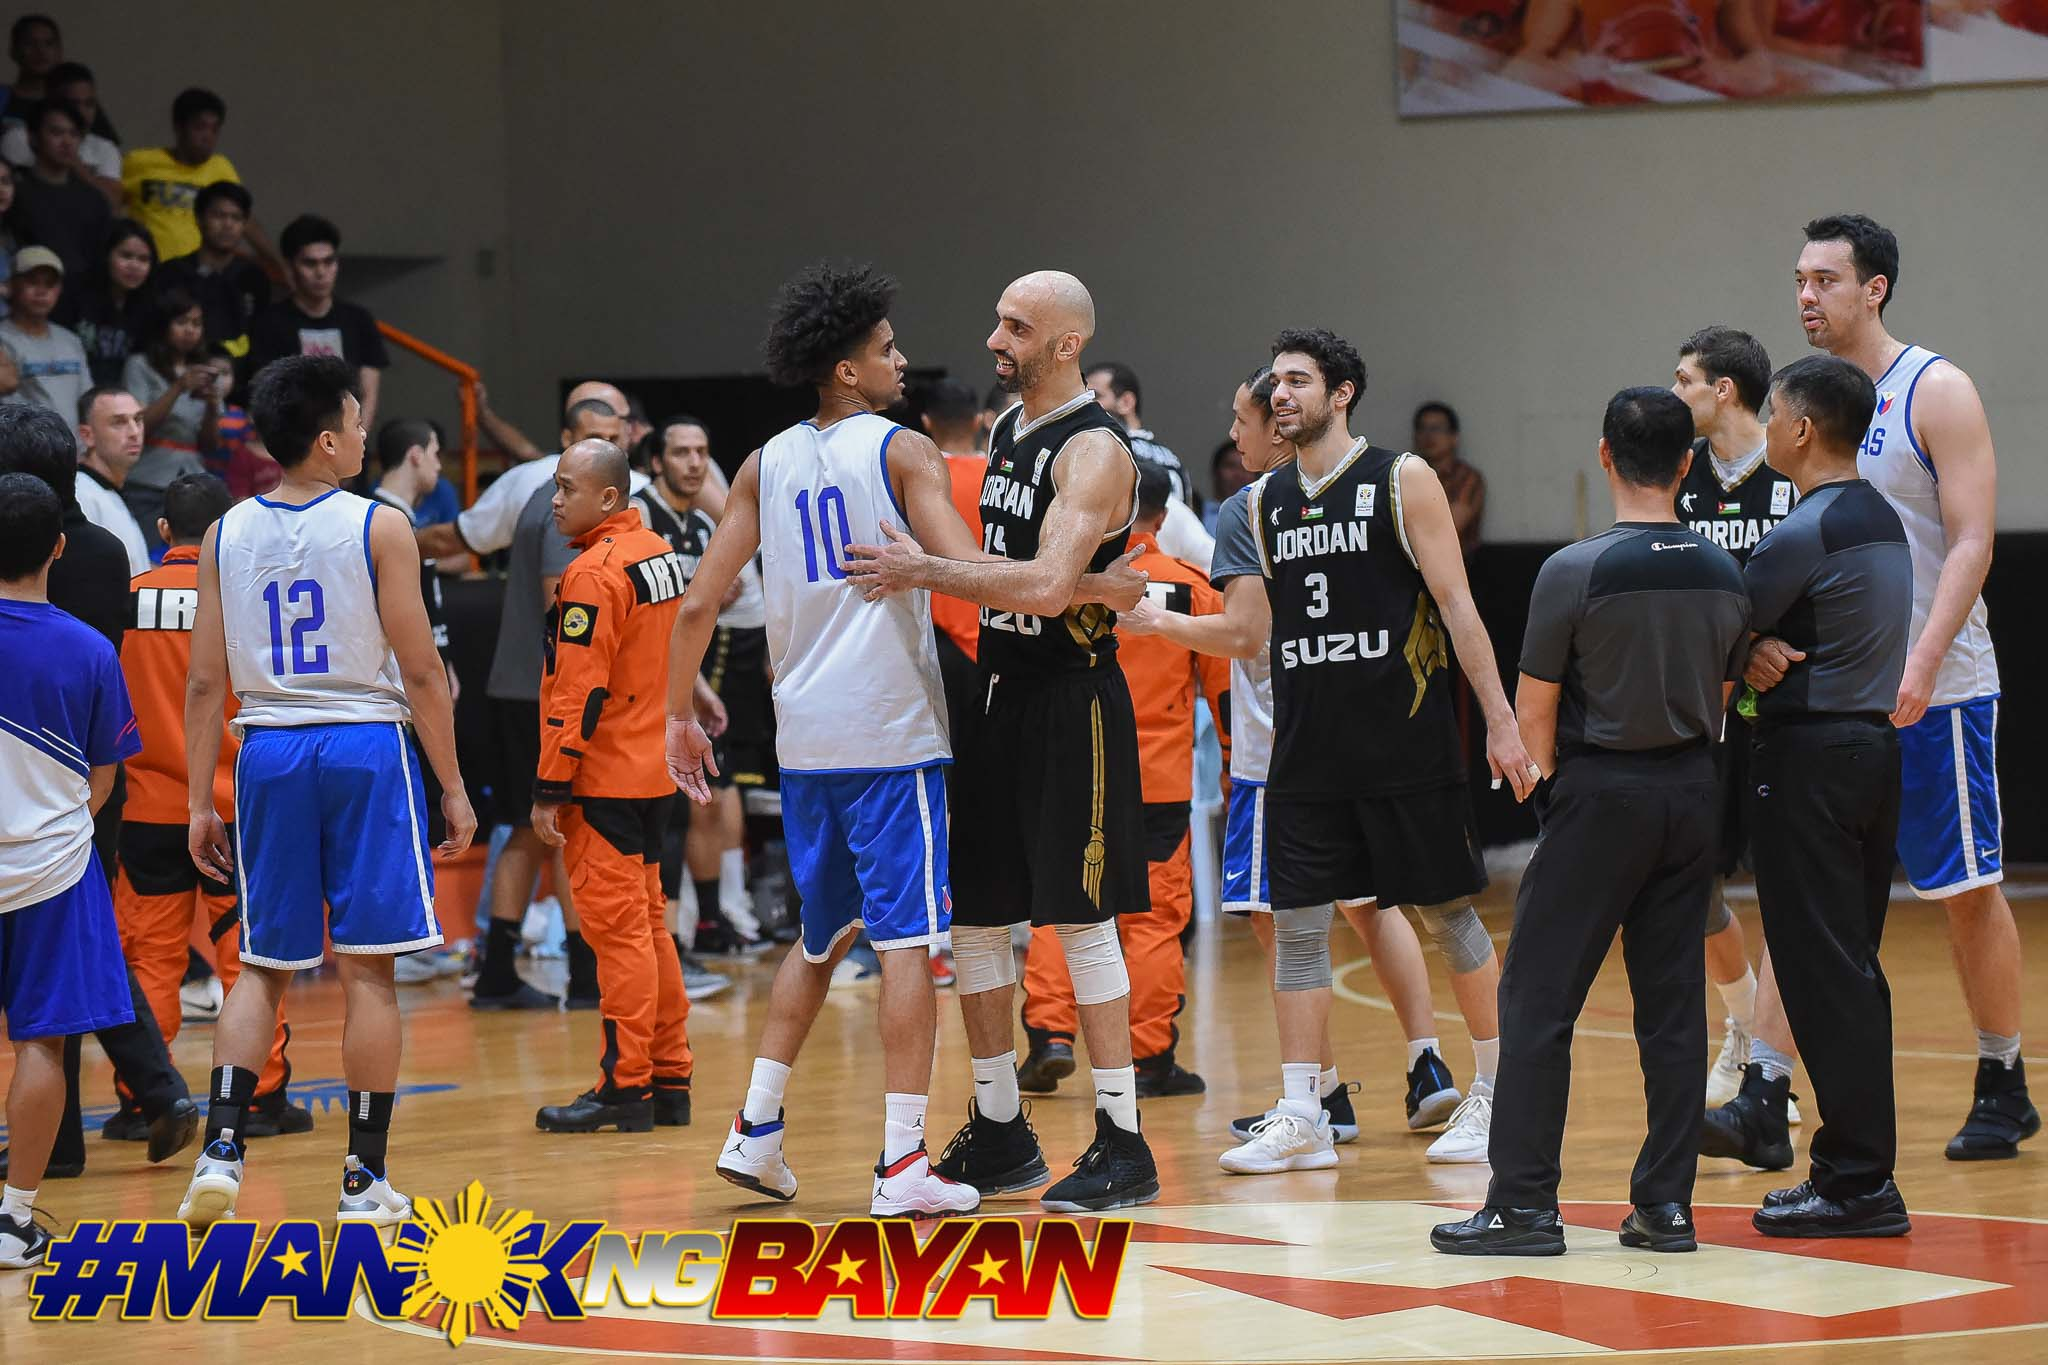 Tiebreaker Times Second Gilas-Jordan tuneup ends abruptly as tempers flare 2019 FIBA World Cup Qualifiers Basketball Gilas Pilipinas News  Yeng Guiao Scottie Thompson LA Tenorio Joseph Steibing Jordan (Basketball) Japeth Aguilar Greg Slaughter Gilas Elite 2019 FIBA World Cup Qualifiers